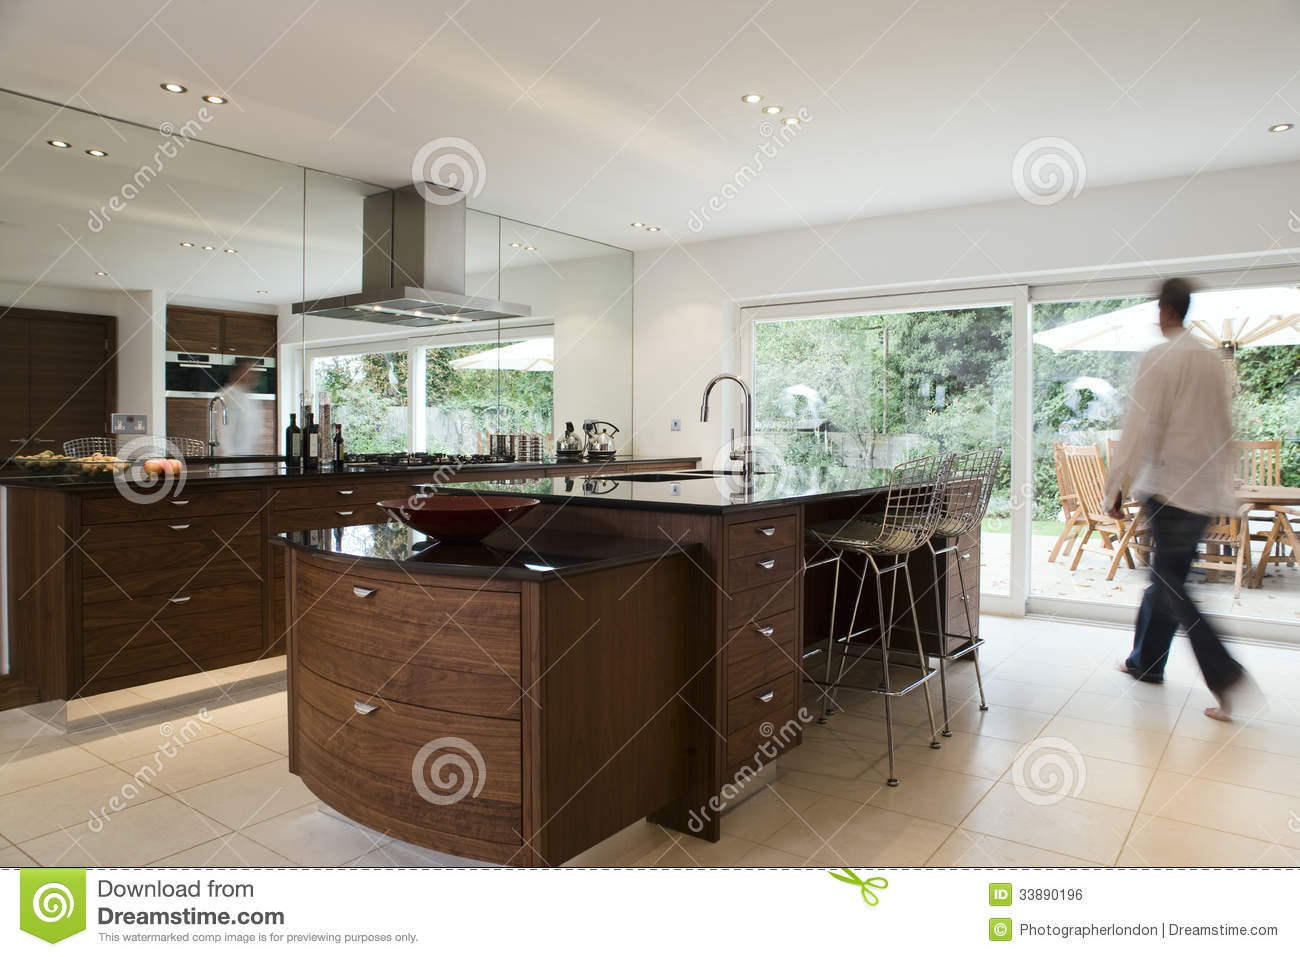 Blurred Man In Modern Kitchen Royalty Free Stock Image